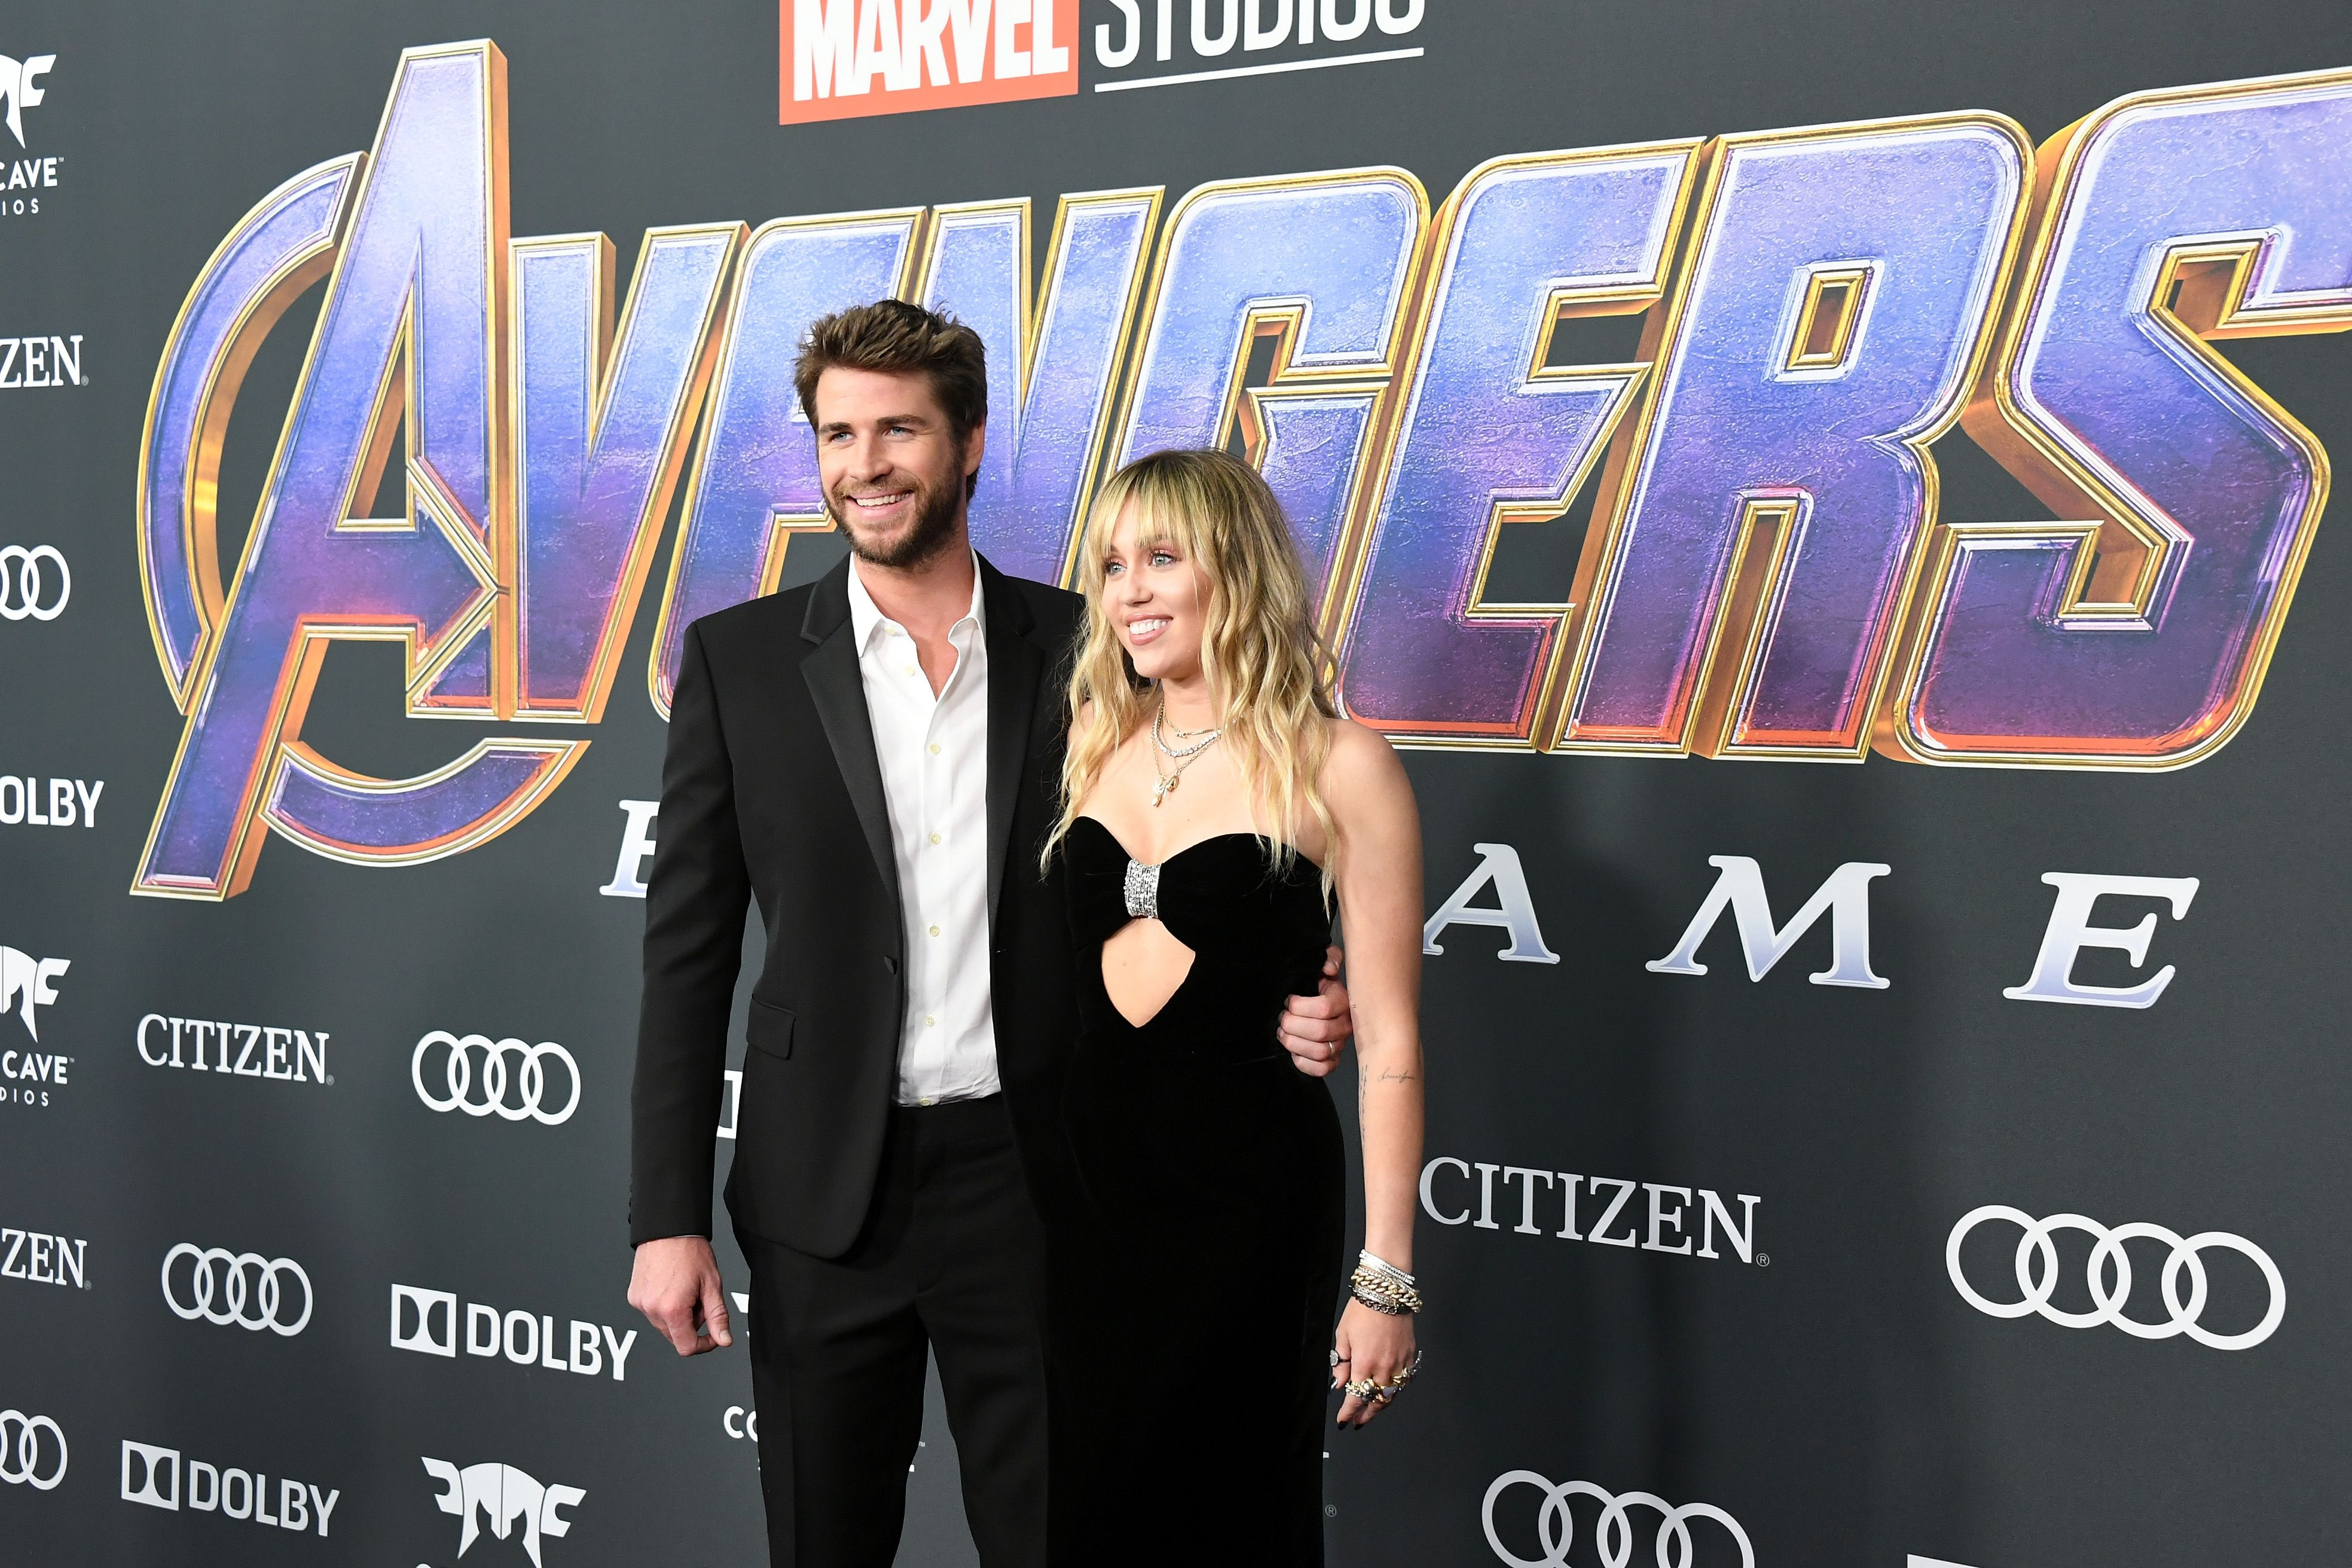 Miley Cyrus and Liam Hemsworth Were the Best Dressed Newlyweds at the 'Avengers: Endgame' Premiere